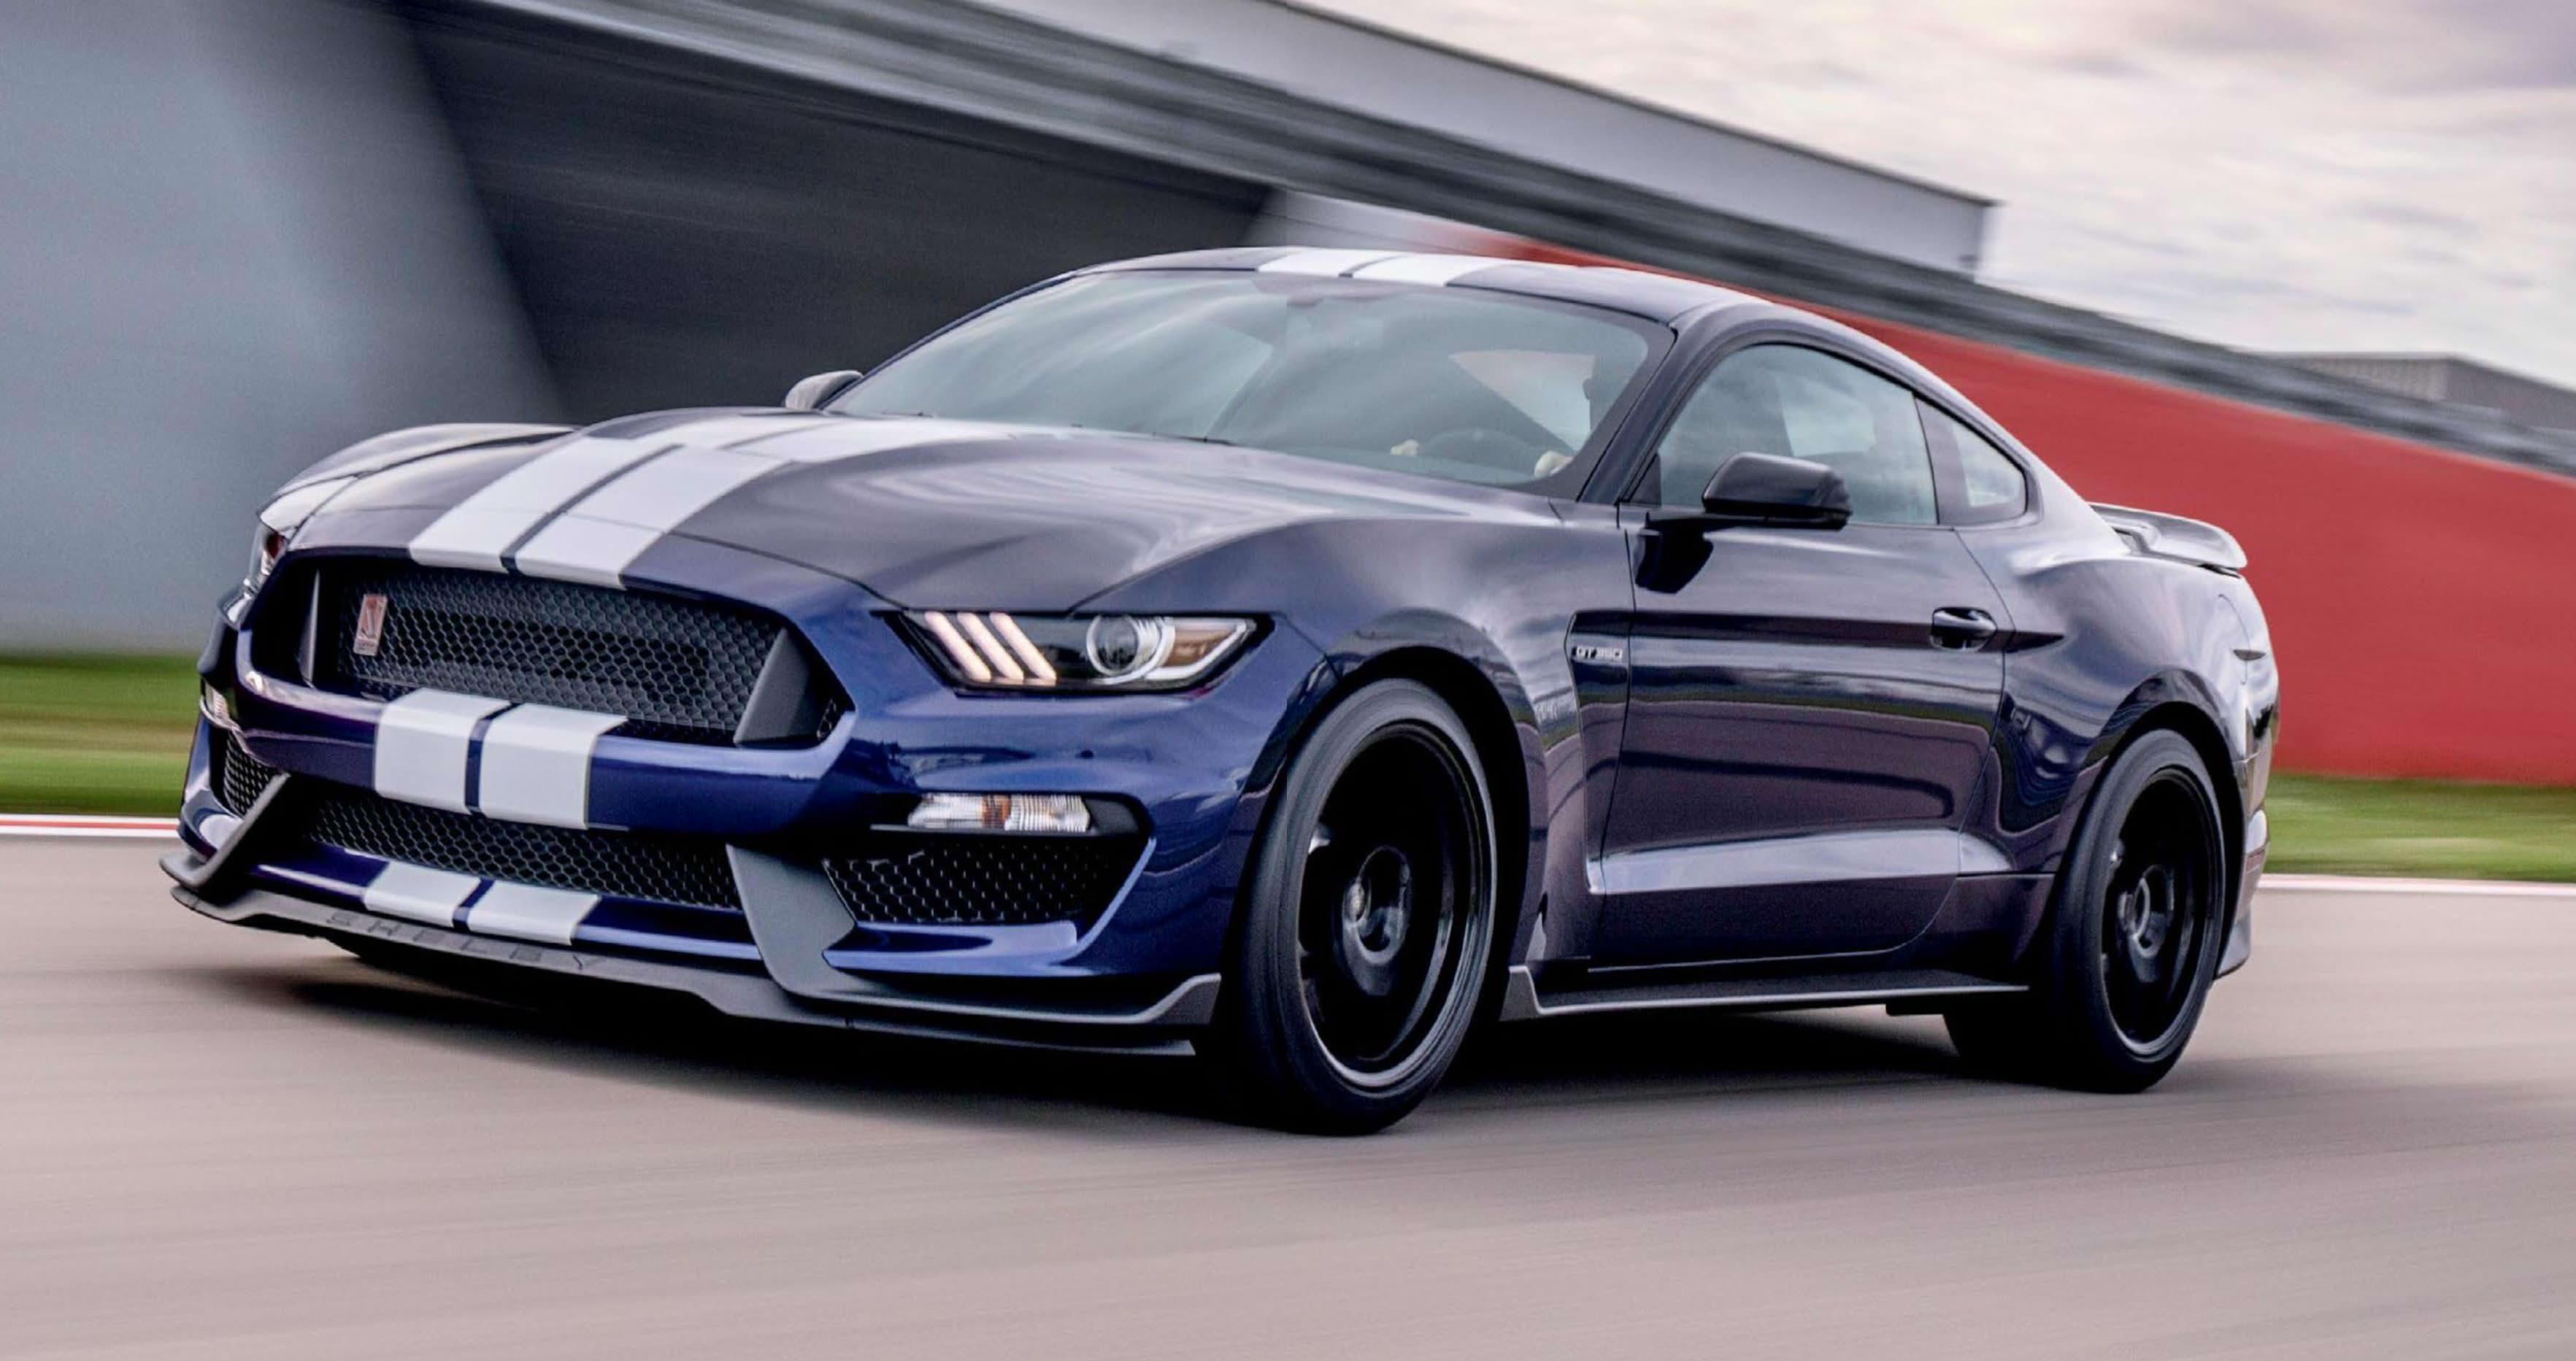 Mustang Shelby Ford Car Mustang Shelby GT350